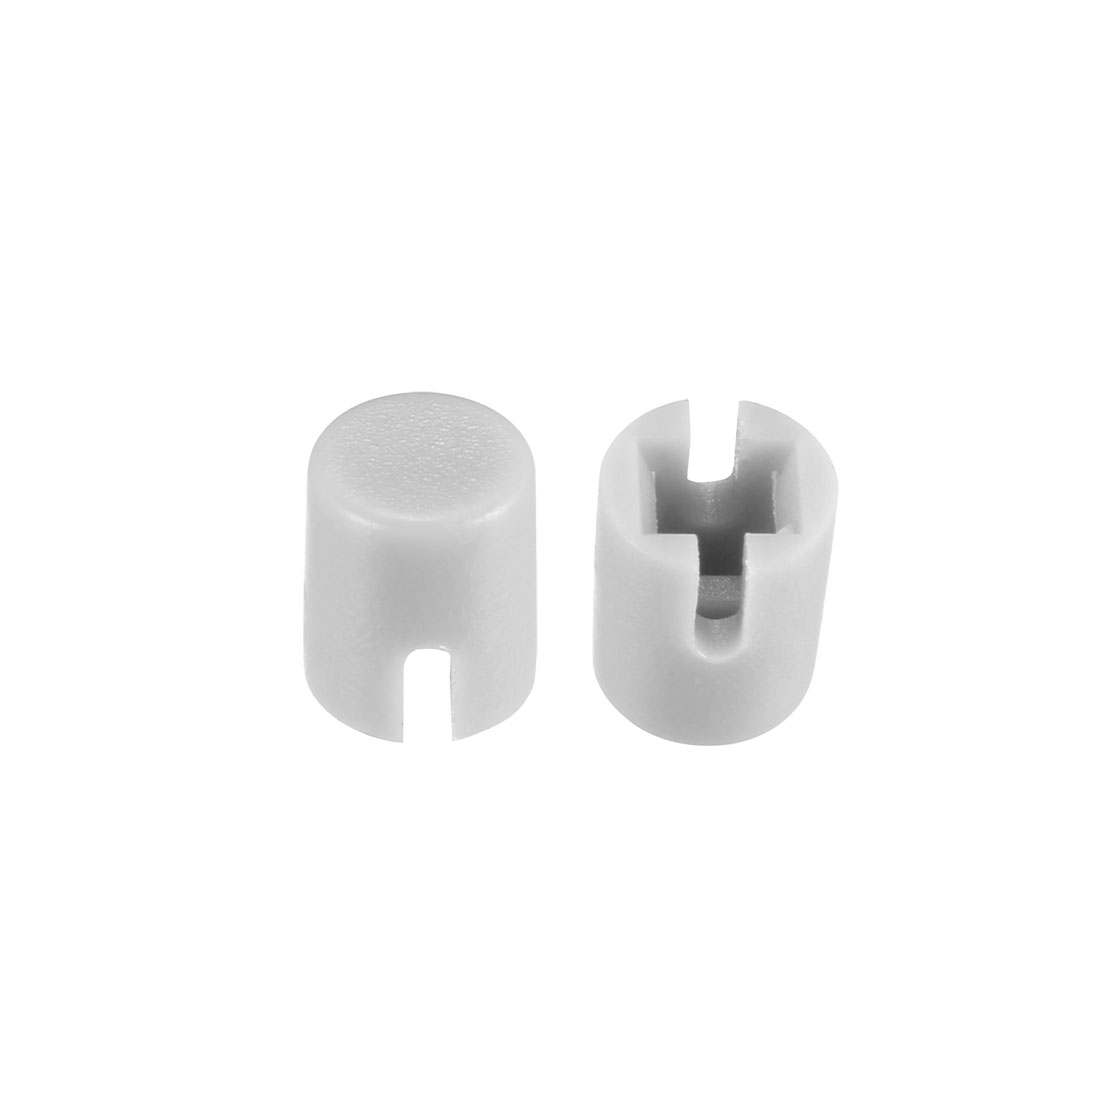 50Pcs 4.6x5.5mm Pushbutton Switch Caps Cover Grey for 6x6x7.3mm Tact Switch